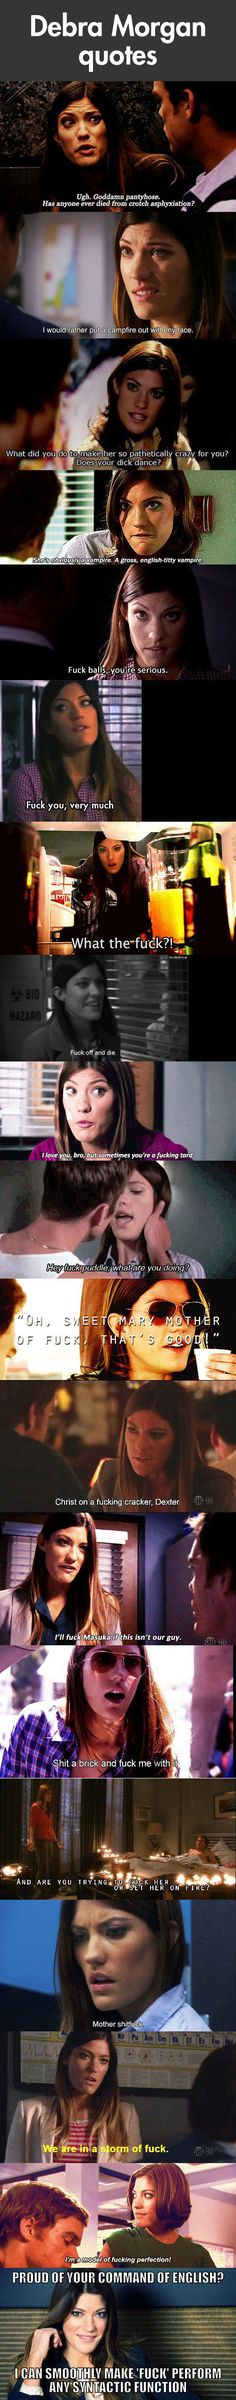 Debra Morgan expanding your vocabulary�